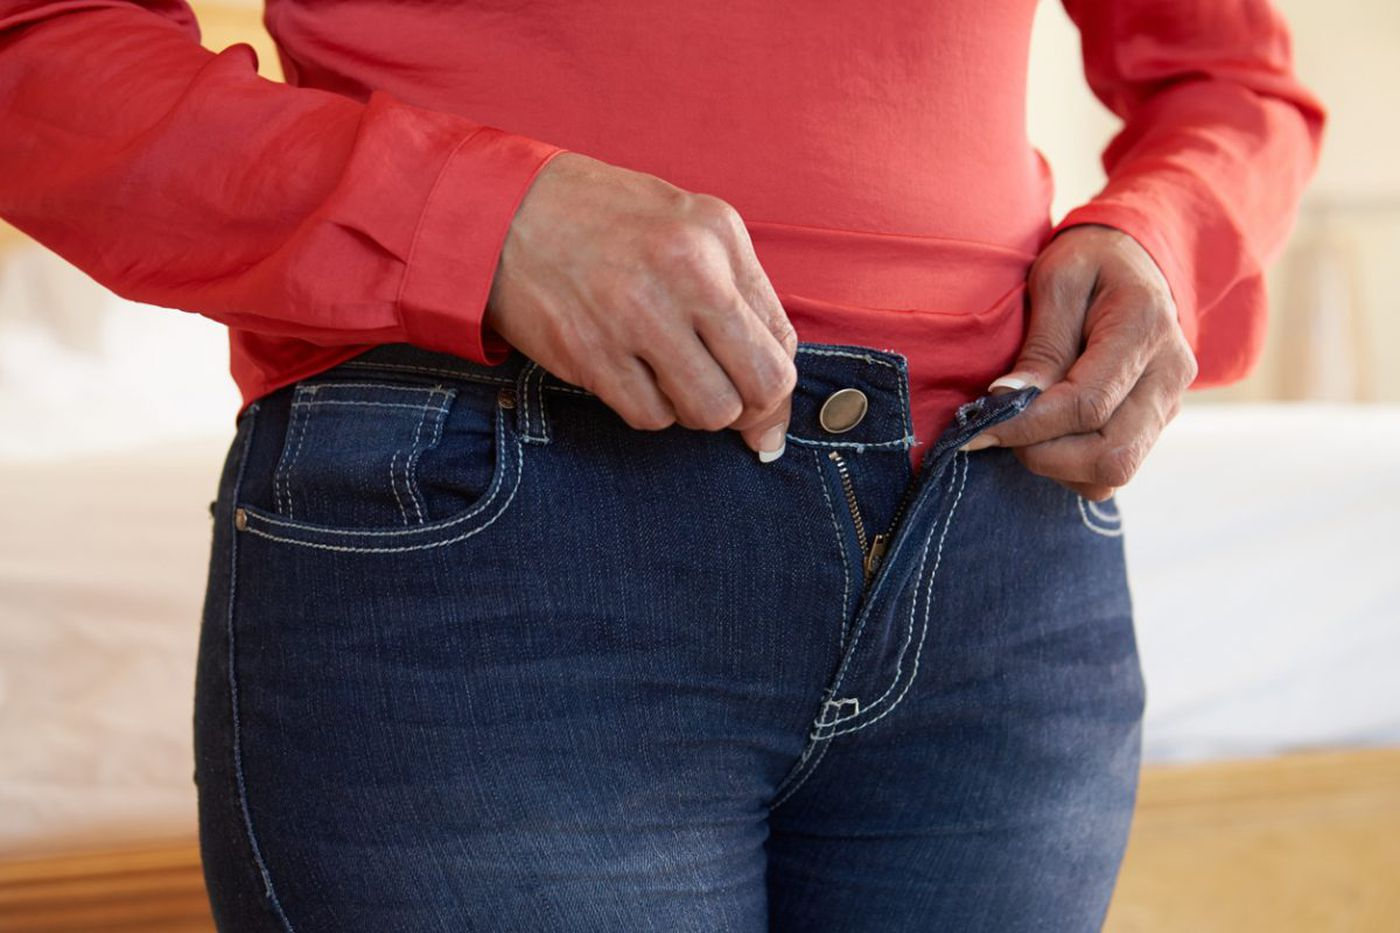 Women past menopause may be fatter than they think